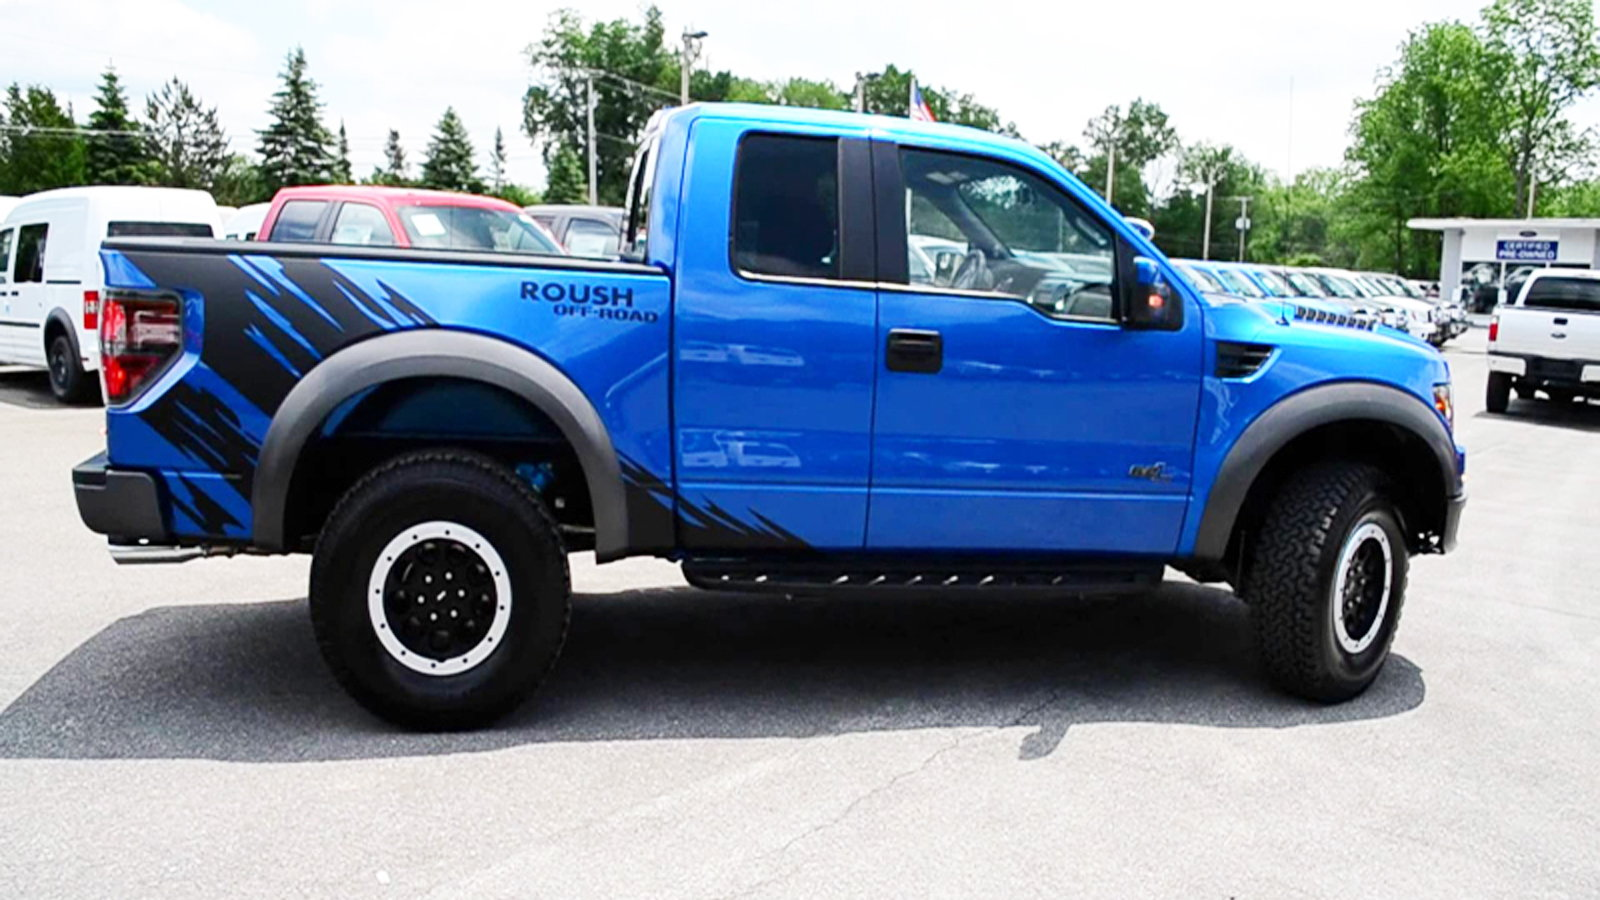 Ford Trucks upgrades and modifications